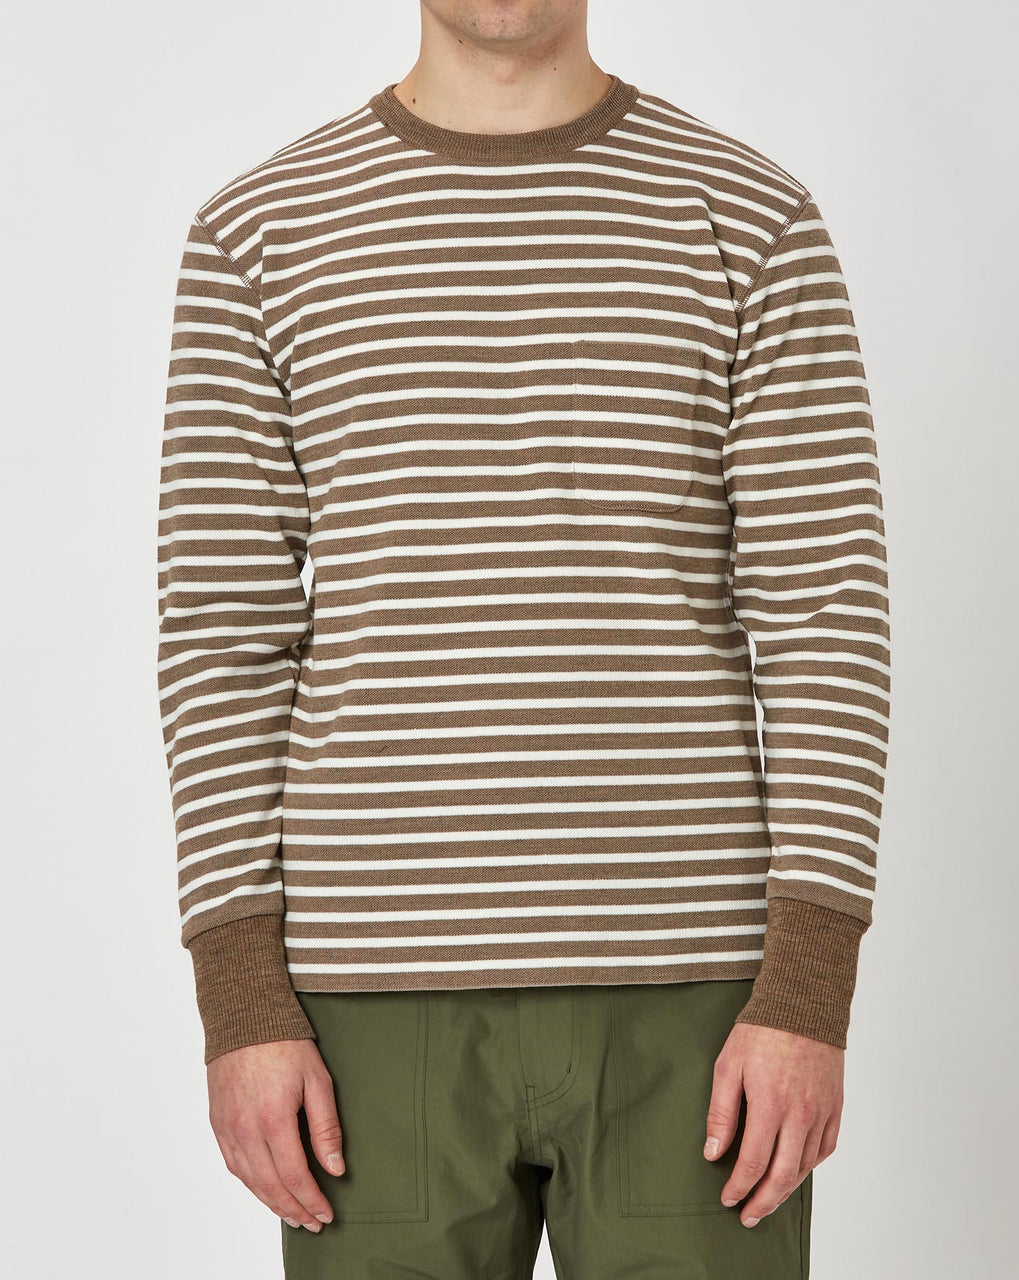 Snow Peak Wool/Linen/PE Crewneck Long Sleeve (Brown and White)